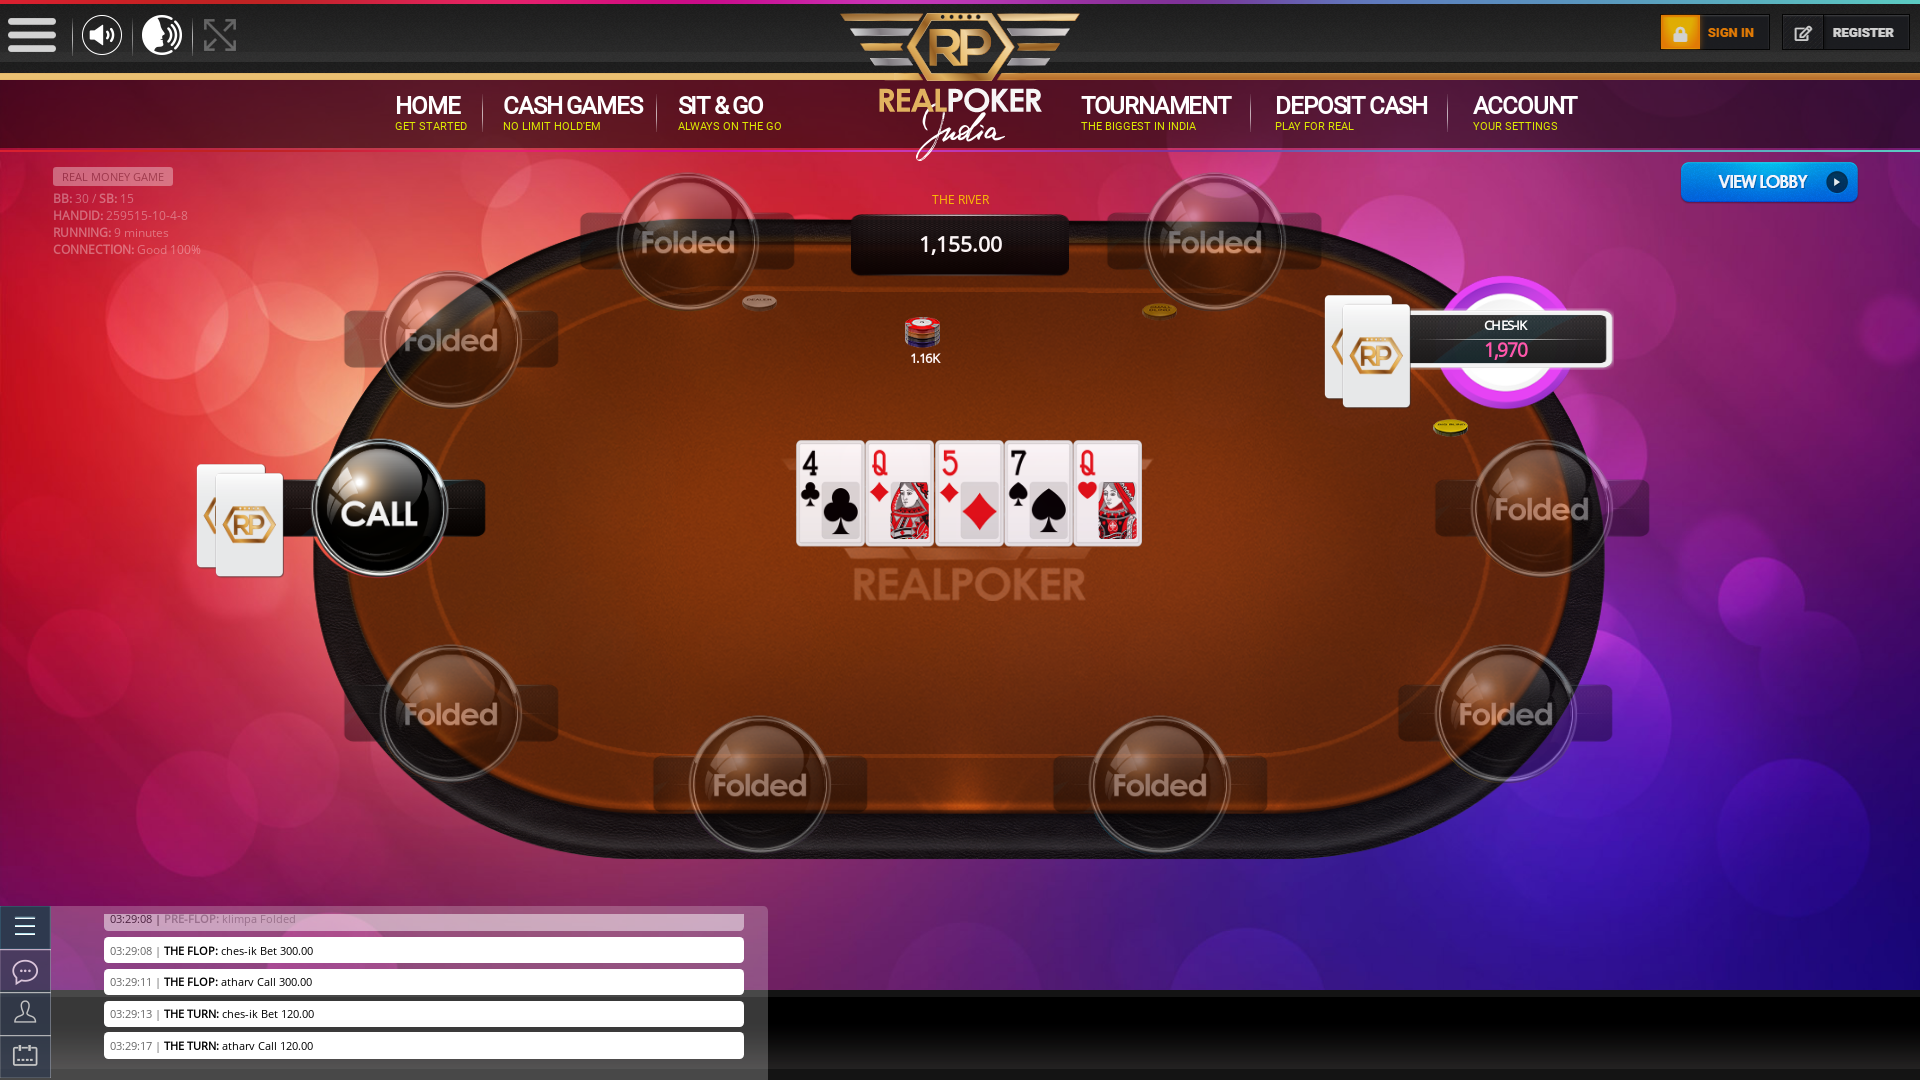 Mathikere, Bangalore texas holdem poker table on a 10 player table in the 9th minute of the match